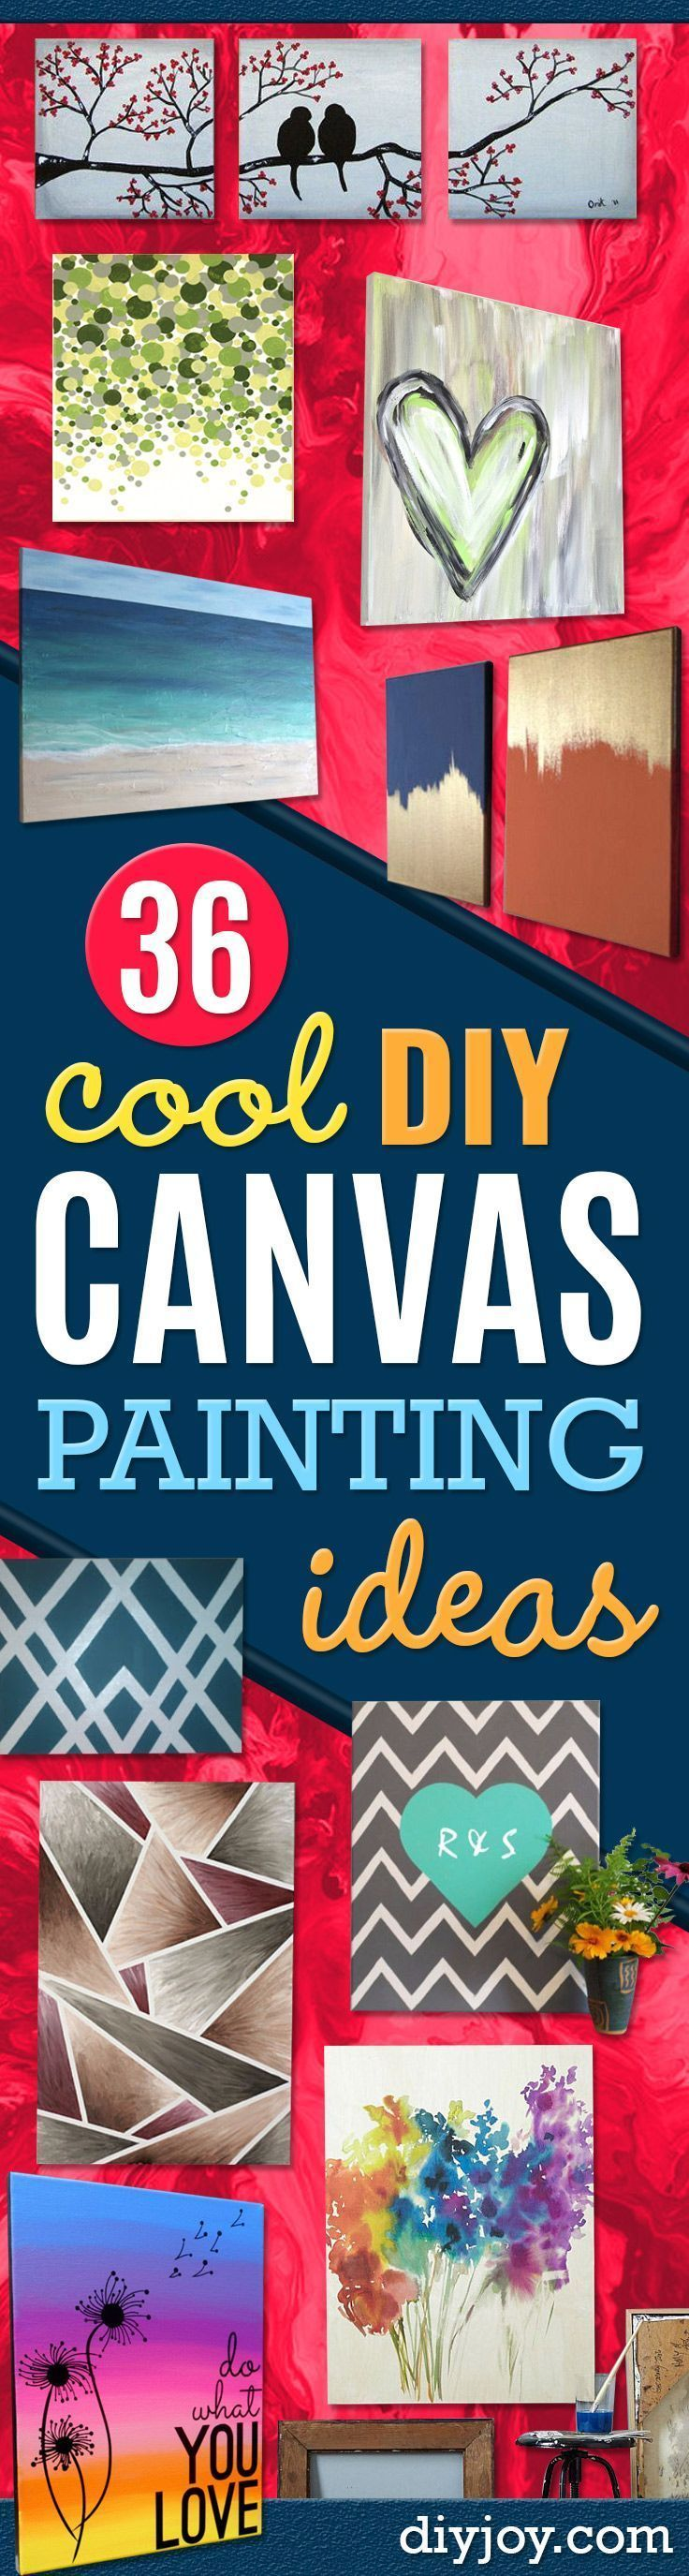 DIY Canvas Painting Ideas - Cool and Easy Wall Art Ideas You Can Make On A Budget - Creative Arts and Crafts Ideas for Adults and Teens - Awesome Art for Living Room, Bedroom, Dorm and Apartment Decorating http://diyjoy.com/diy-canvas-painting